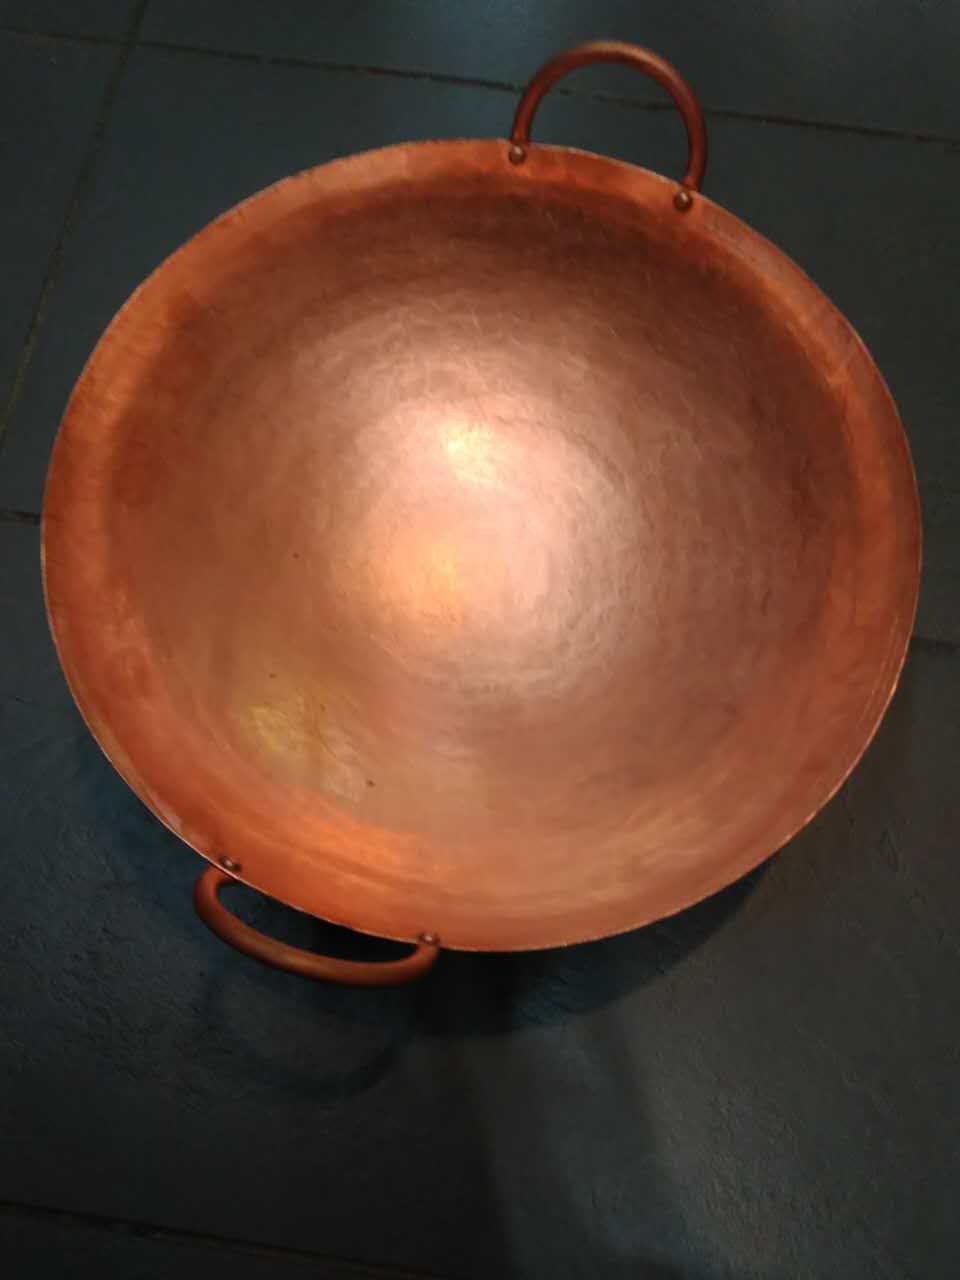 Hand-forged wok from the family-owned Baohui Copper Workshop in Old Guangzhou